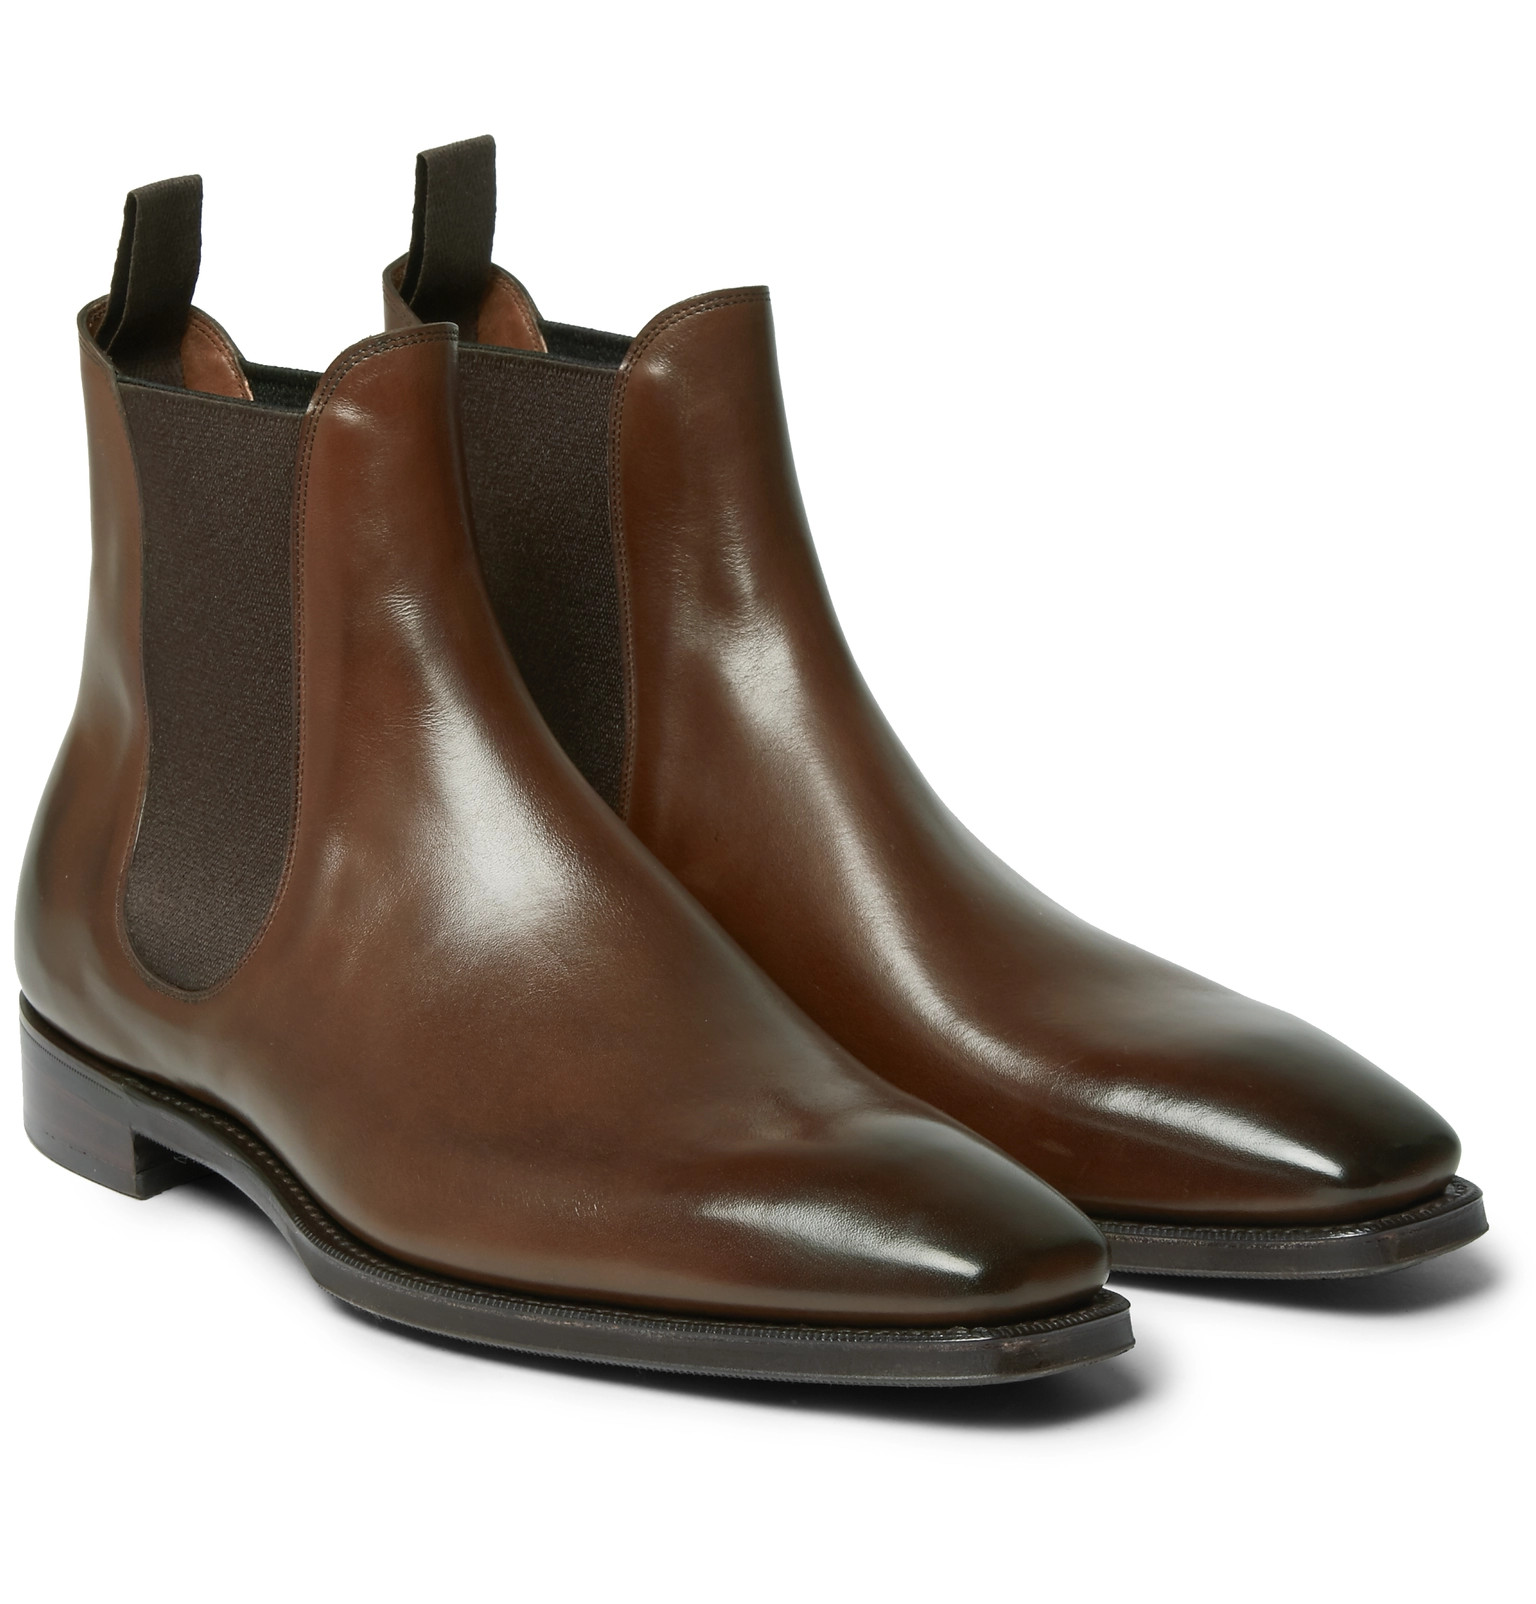 Men&39s Designer Boots - Shop Men&39s Fashion Online at MR PORTER